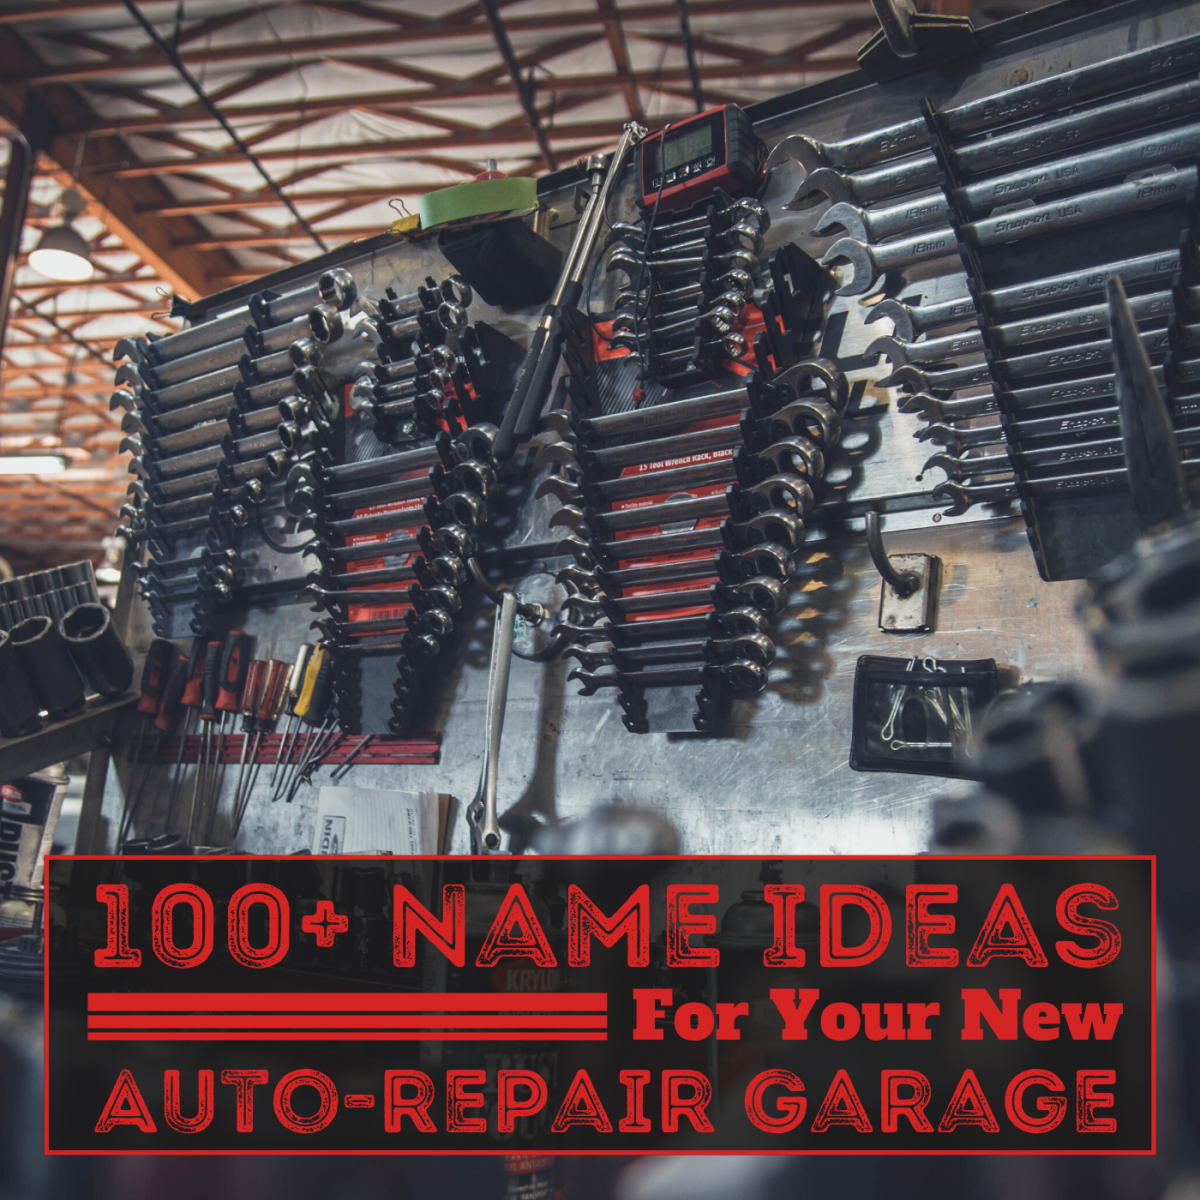 Thinking of starting a business as an auto mechanic? Picking the right name can help you stand out.